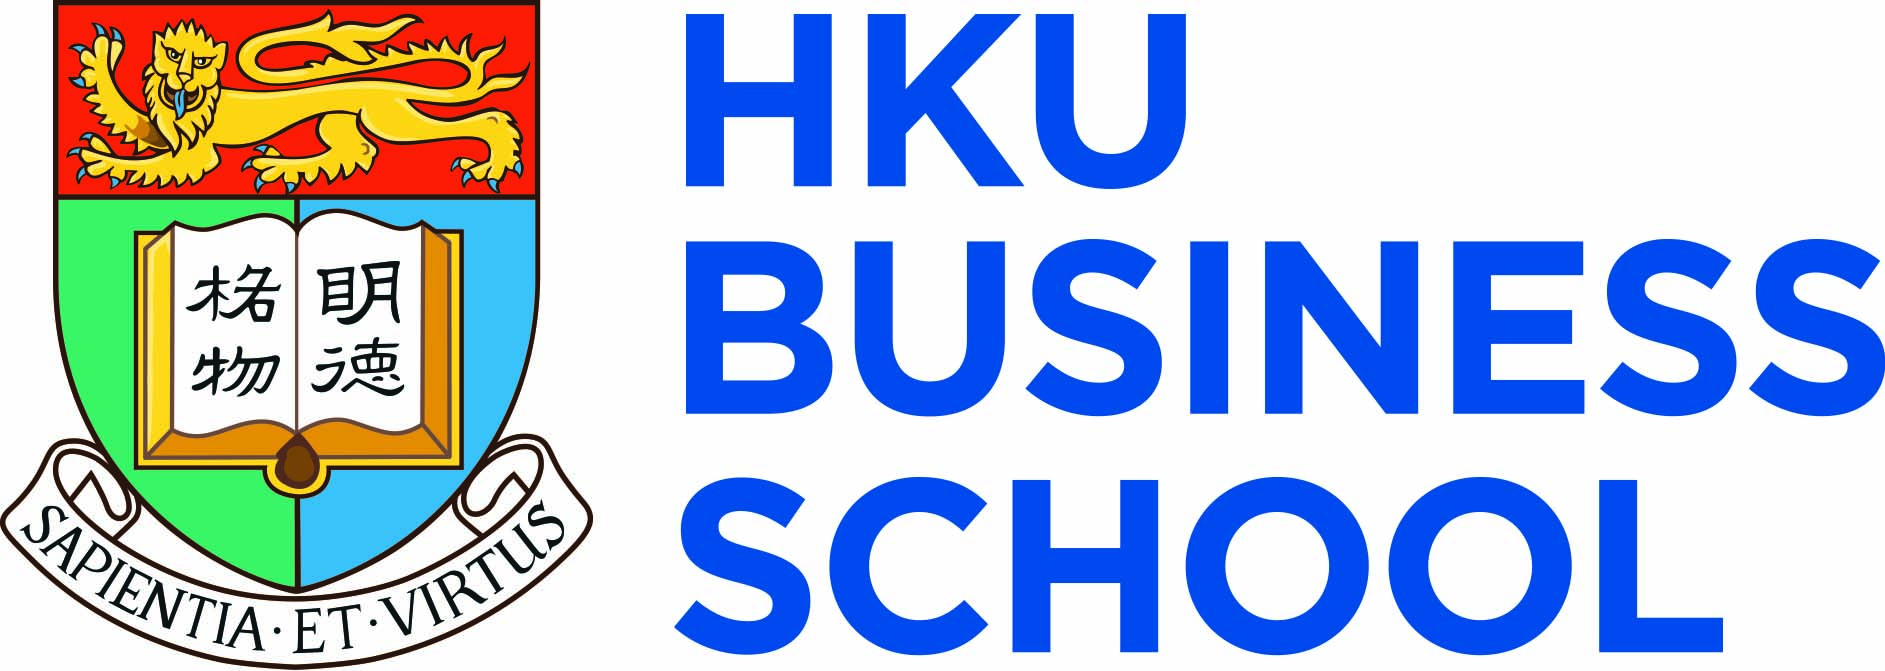 HKU, The University of Hong Kong